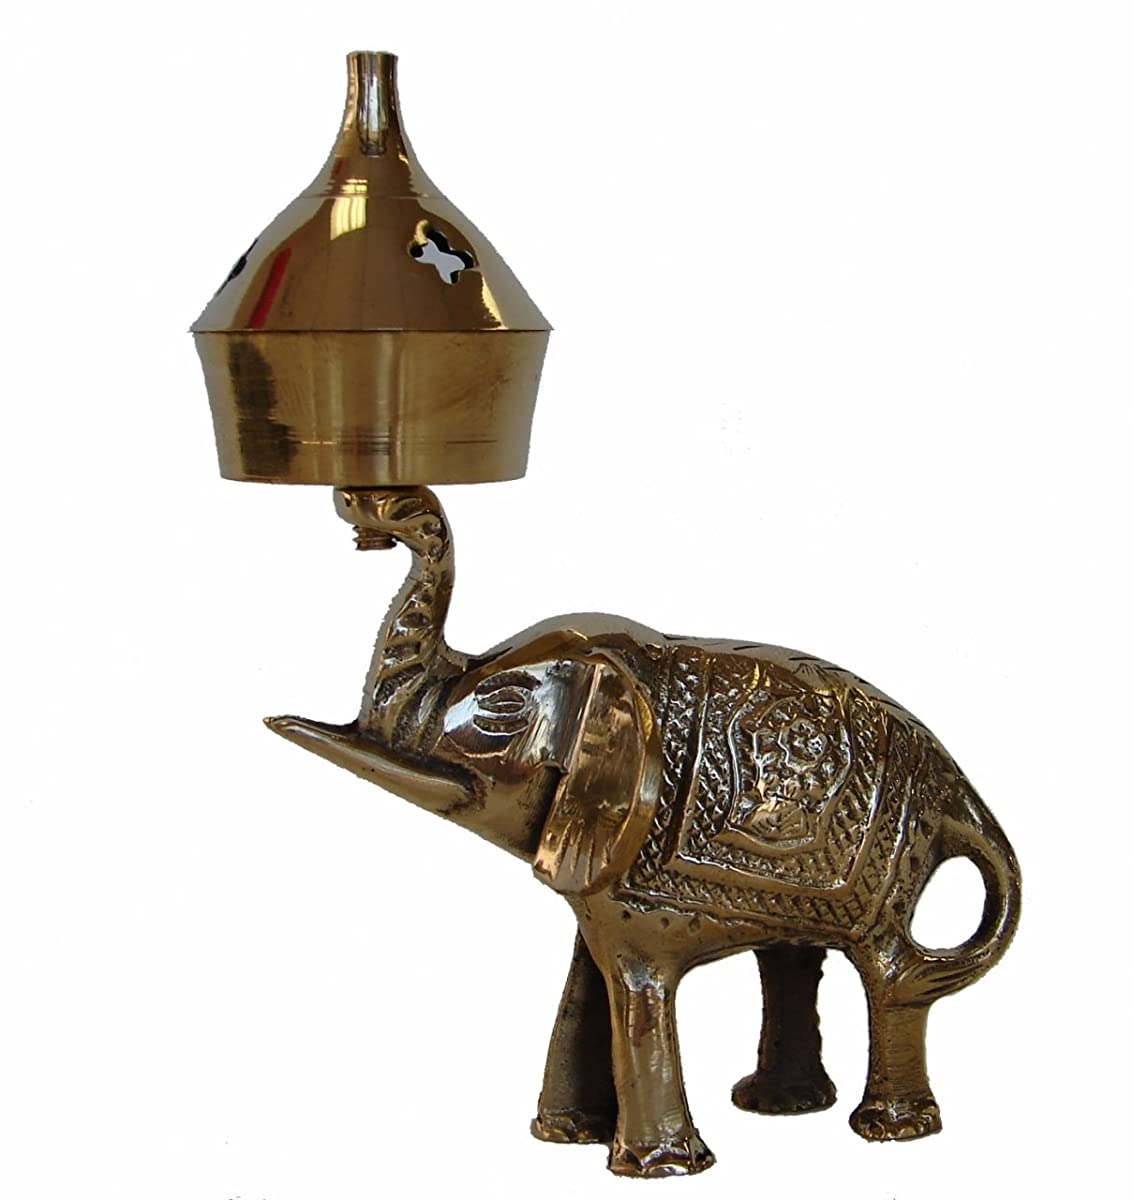 Feng Shui Import Brass Incense Oil Burner with Elephant